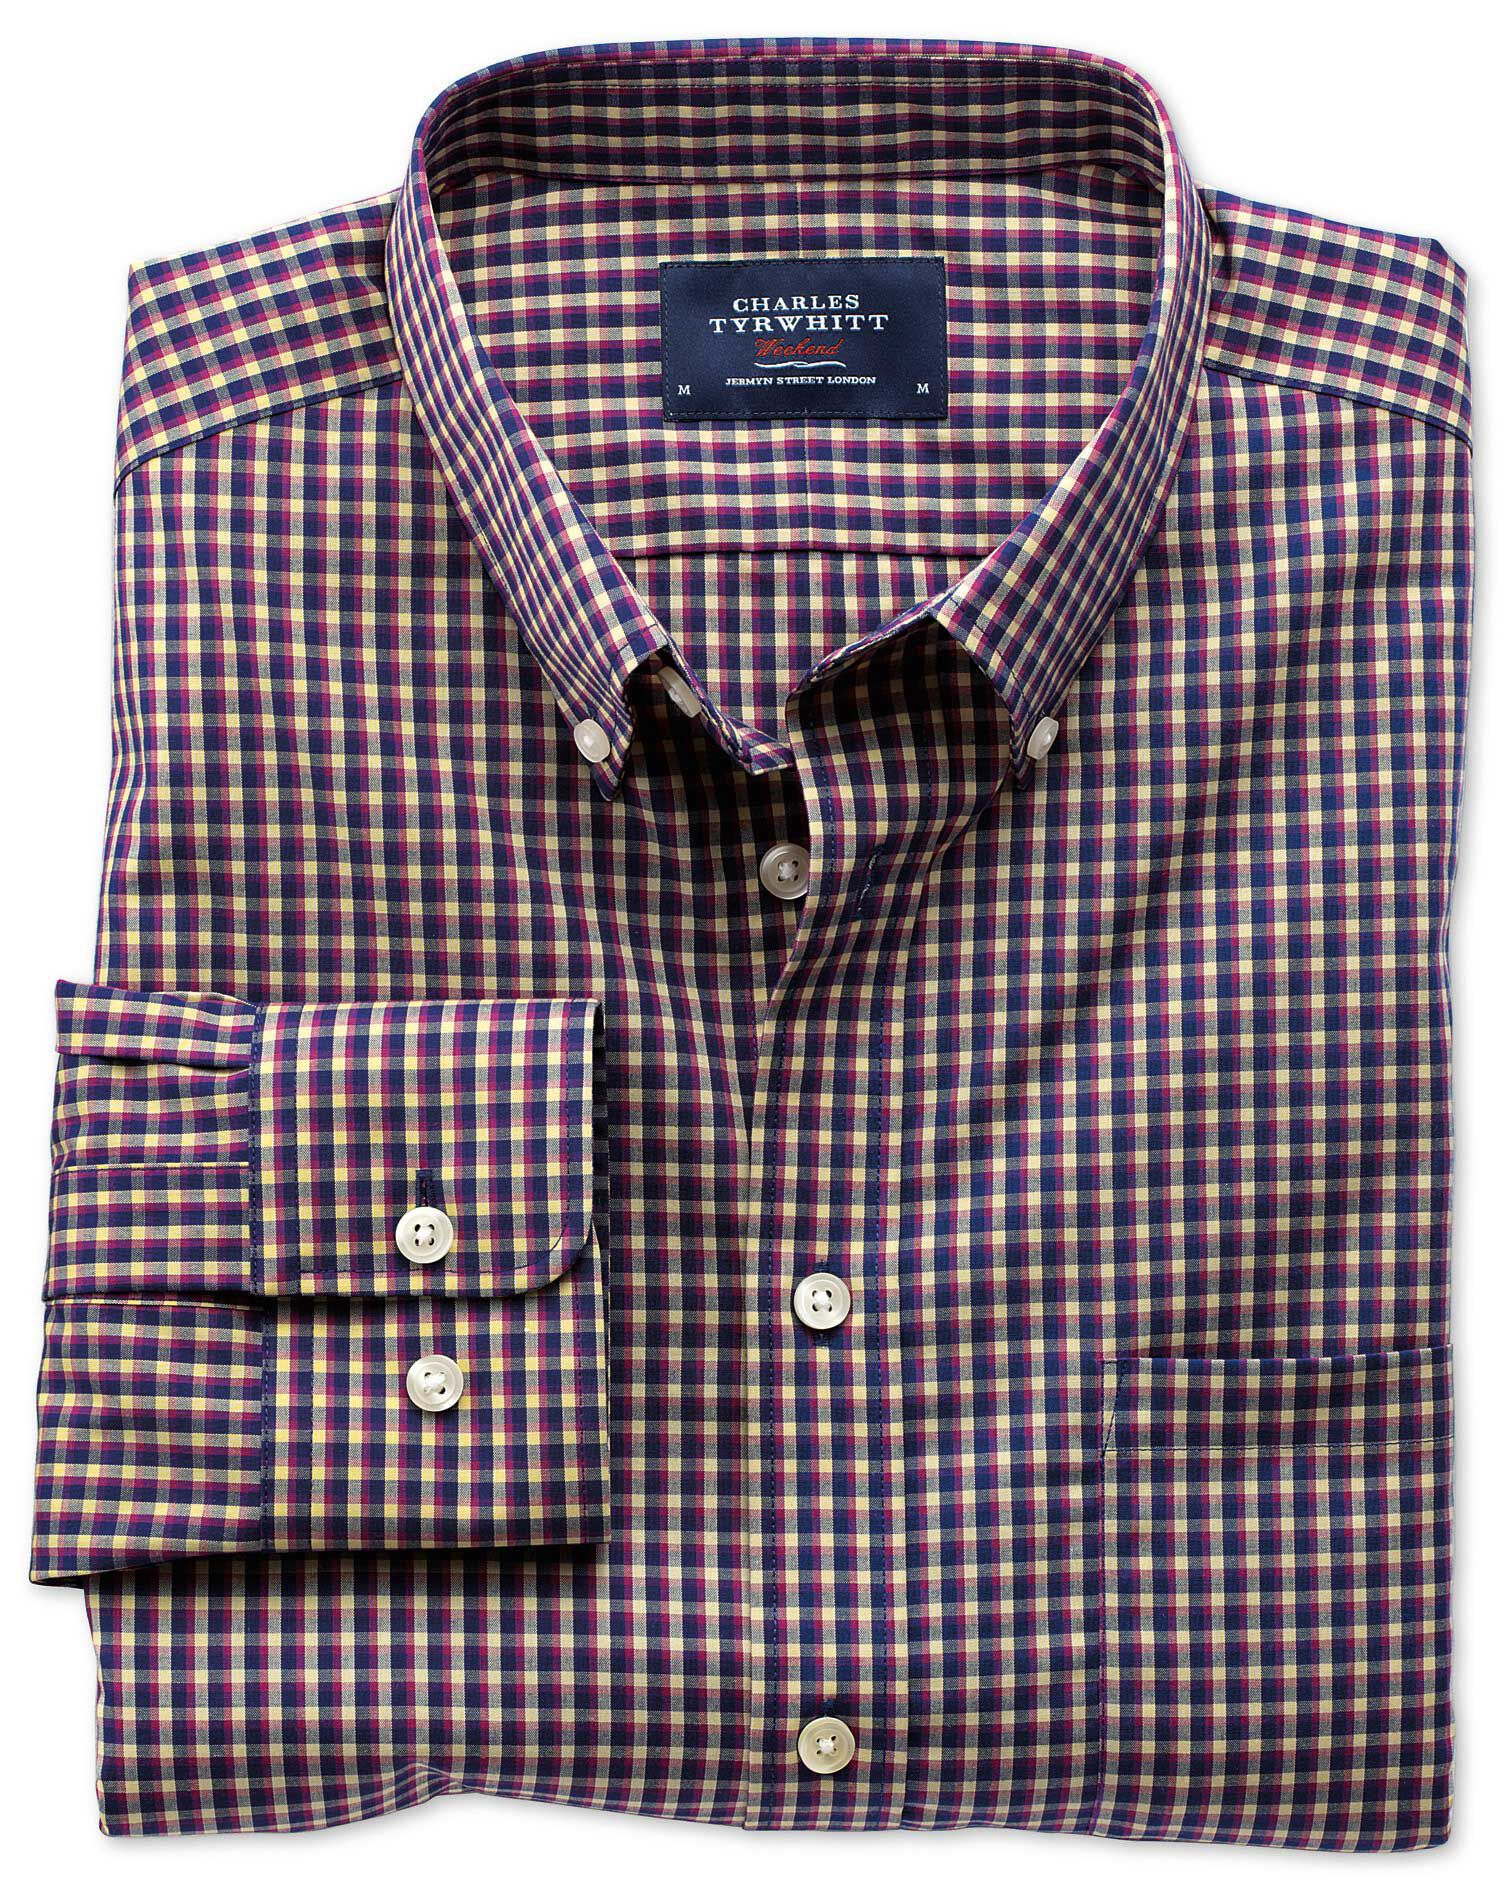 Classic Fit Non-Iron Poplin Navy and Berry Check Cotton Shirt Single Cuff Size Large by Charles Tyrw